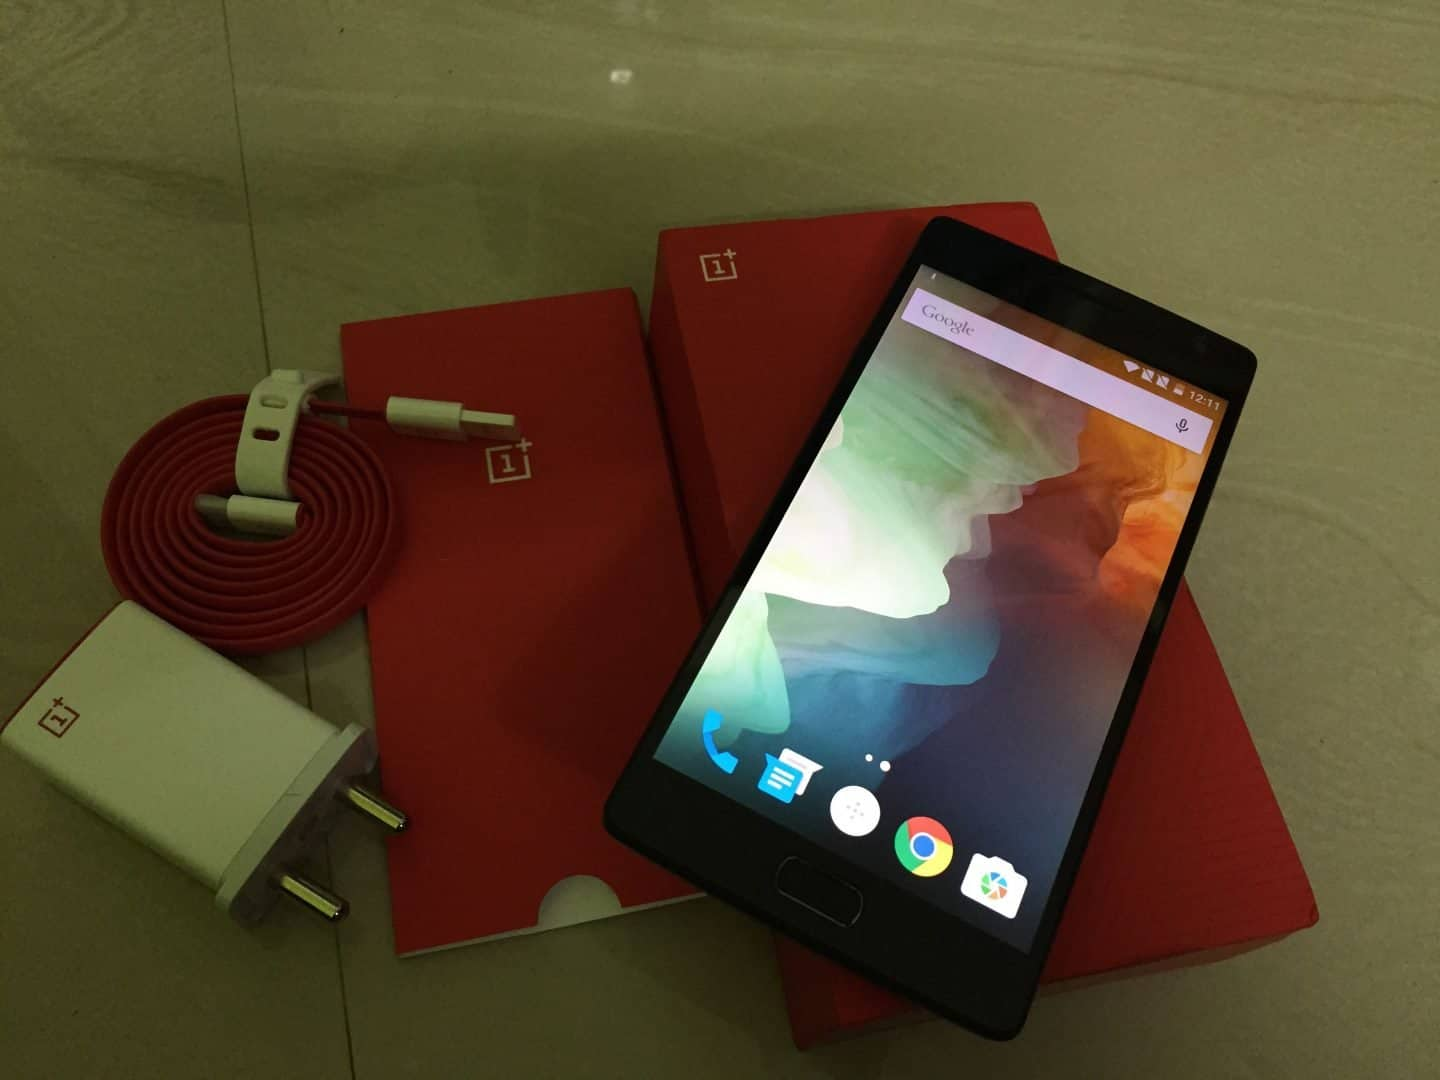 OnePlus 2 Review: Is it really the most hyped smartphone of 2015? - 12